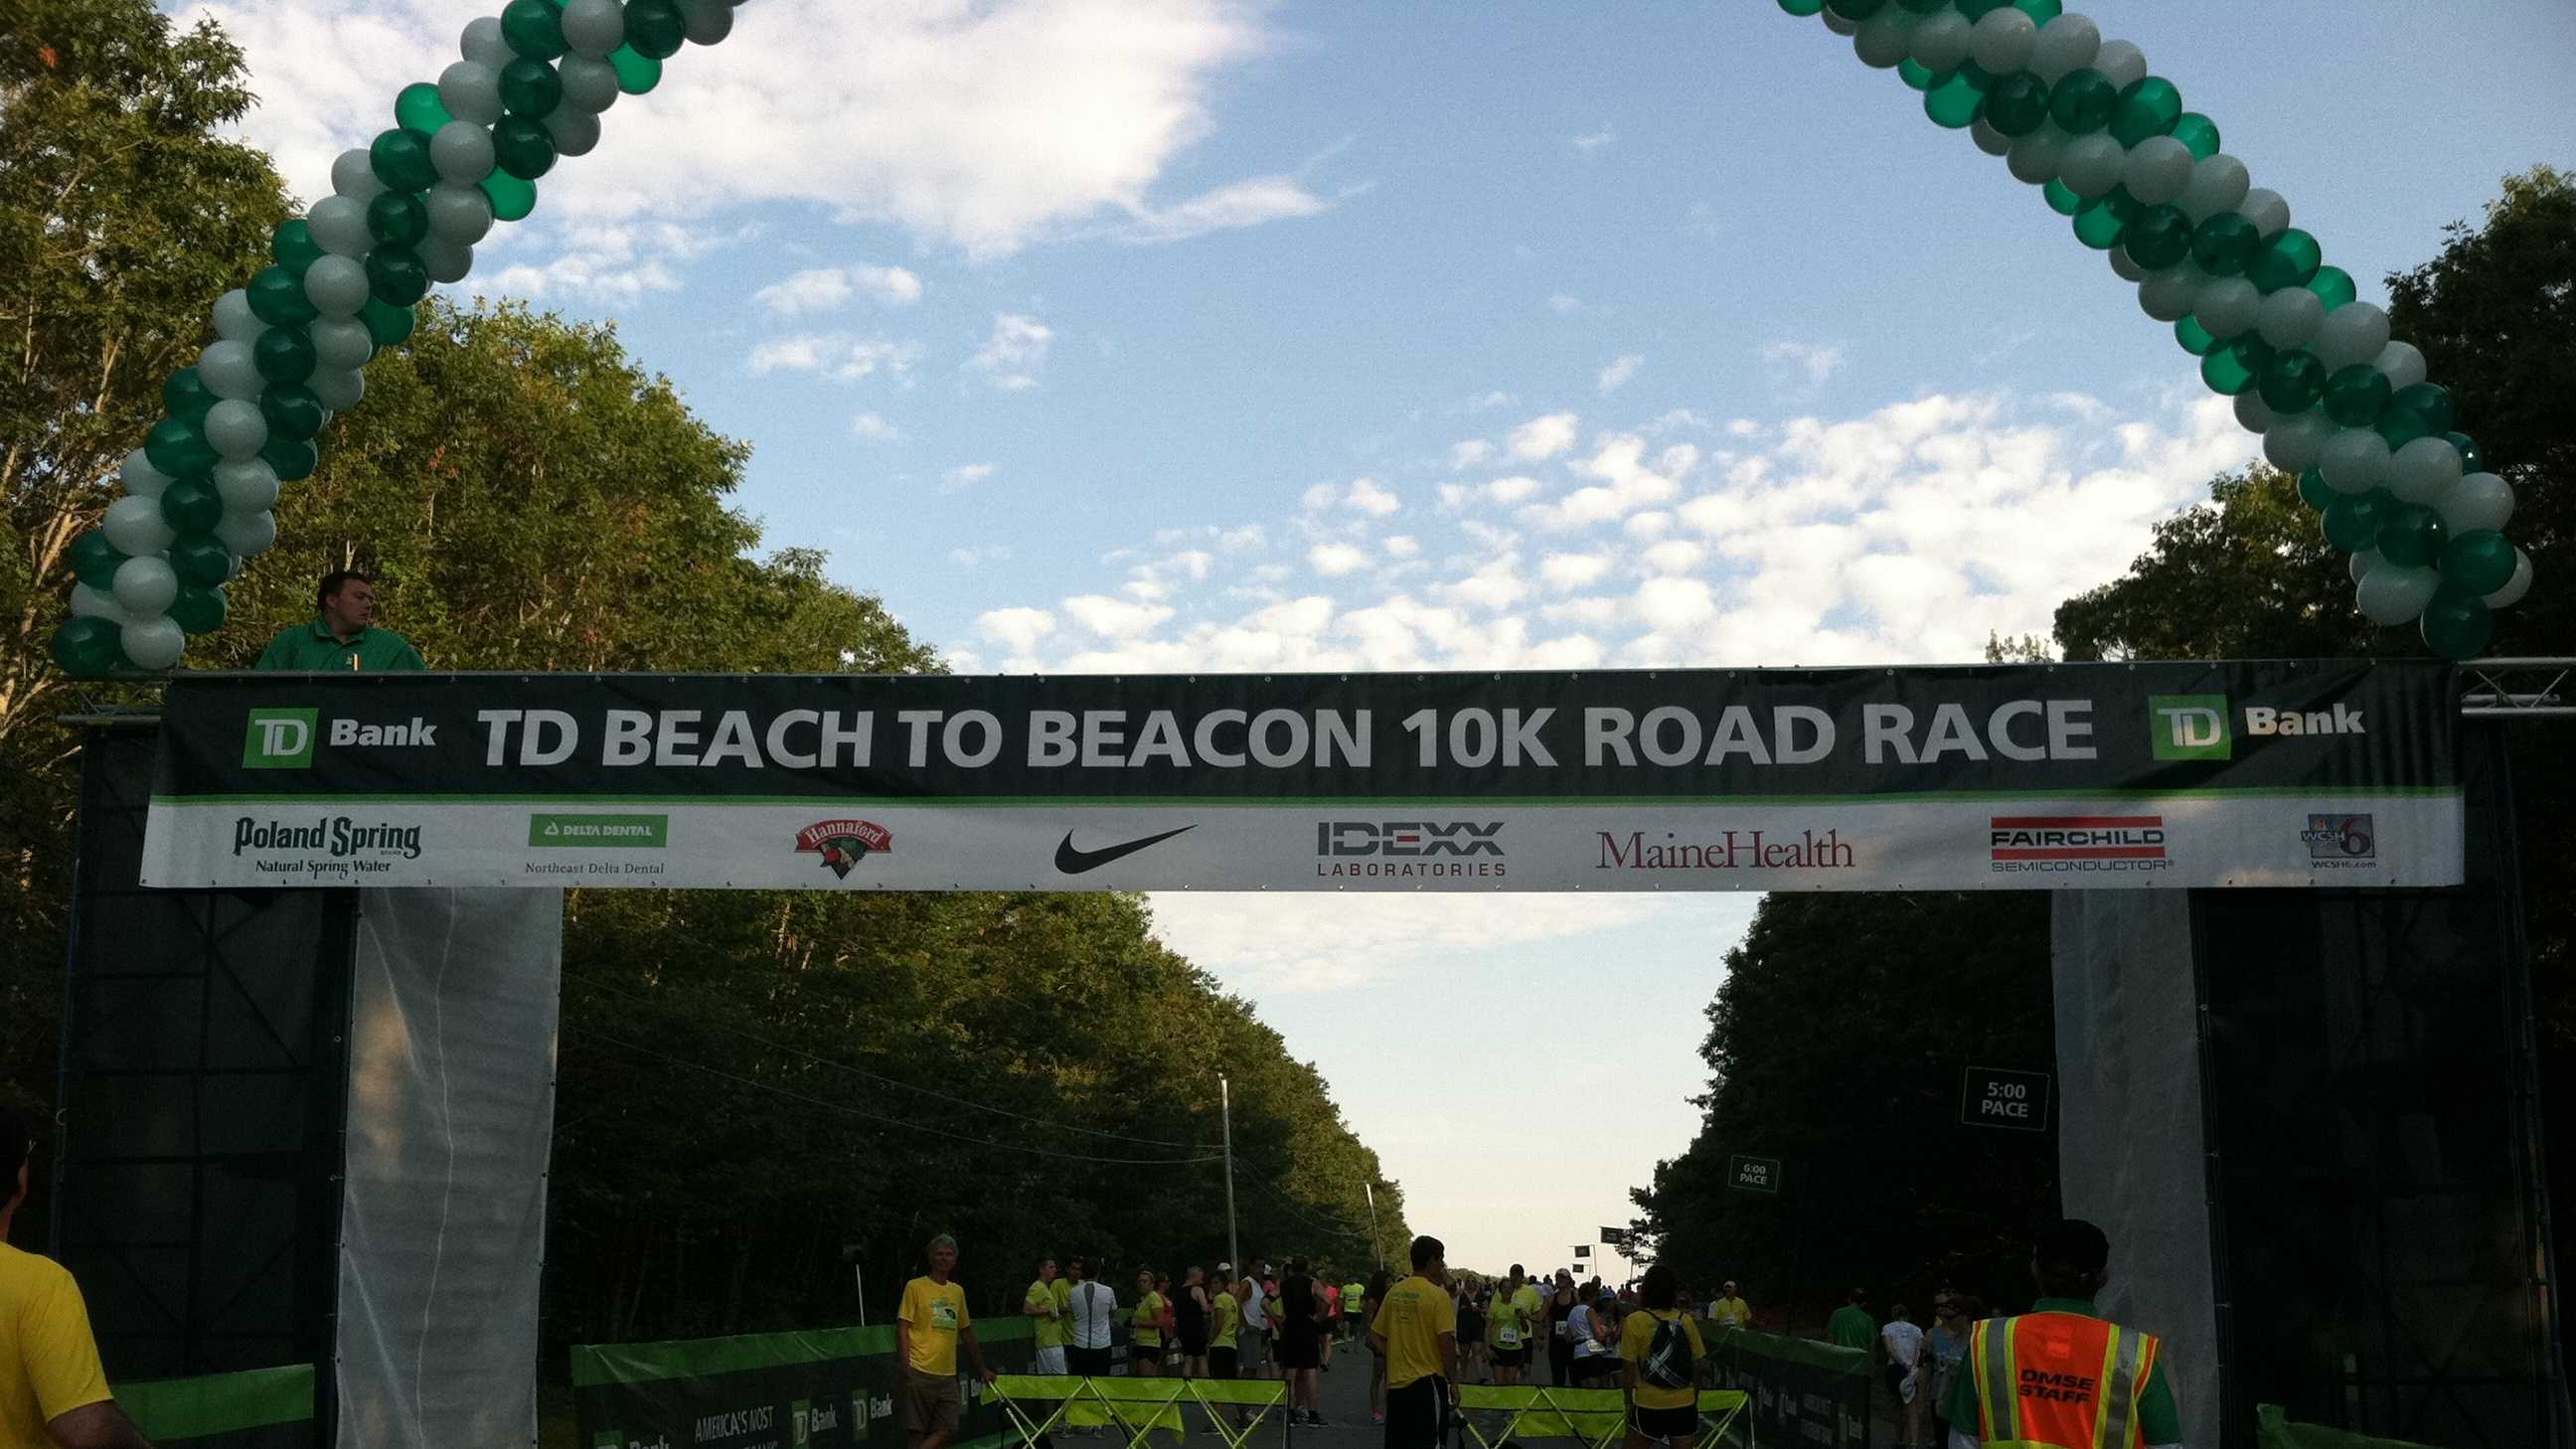 The starting line for The 15th Annual Beach to Beacon was near Crescent Beach State Park in Cape Elizabeth.